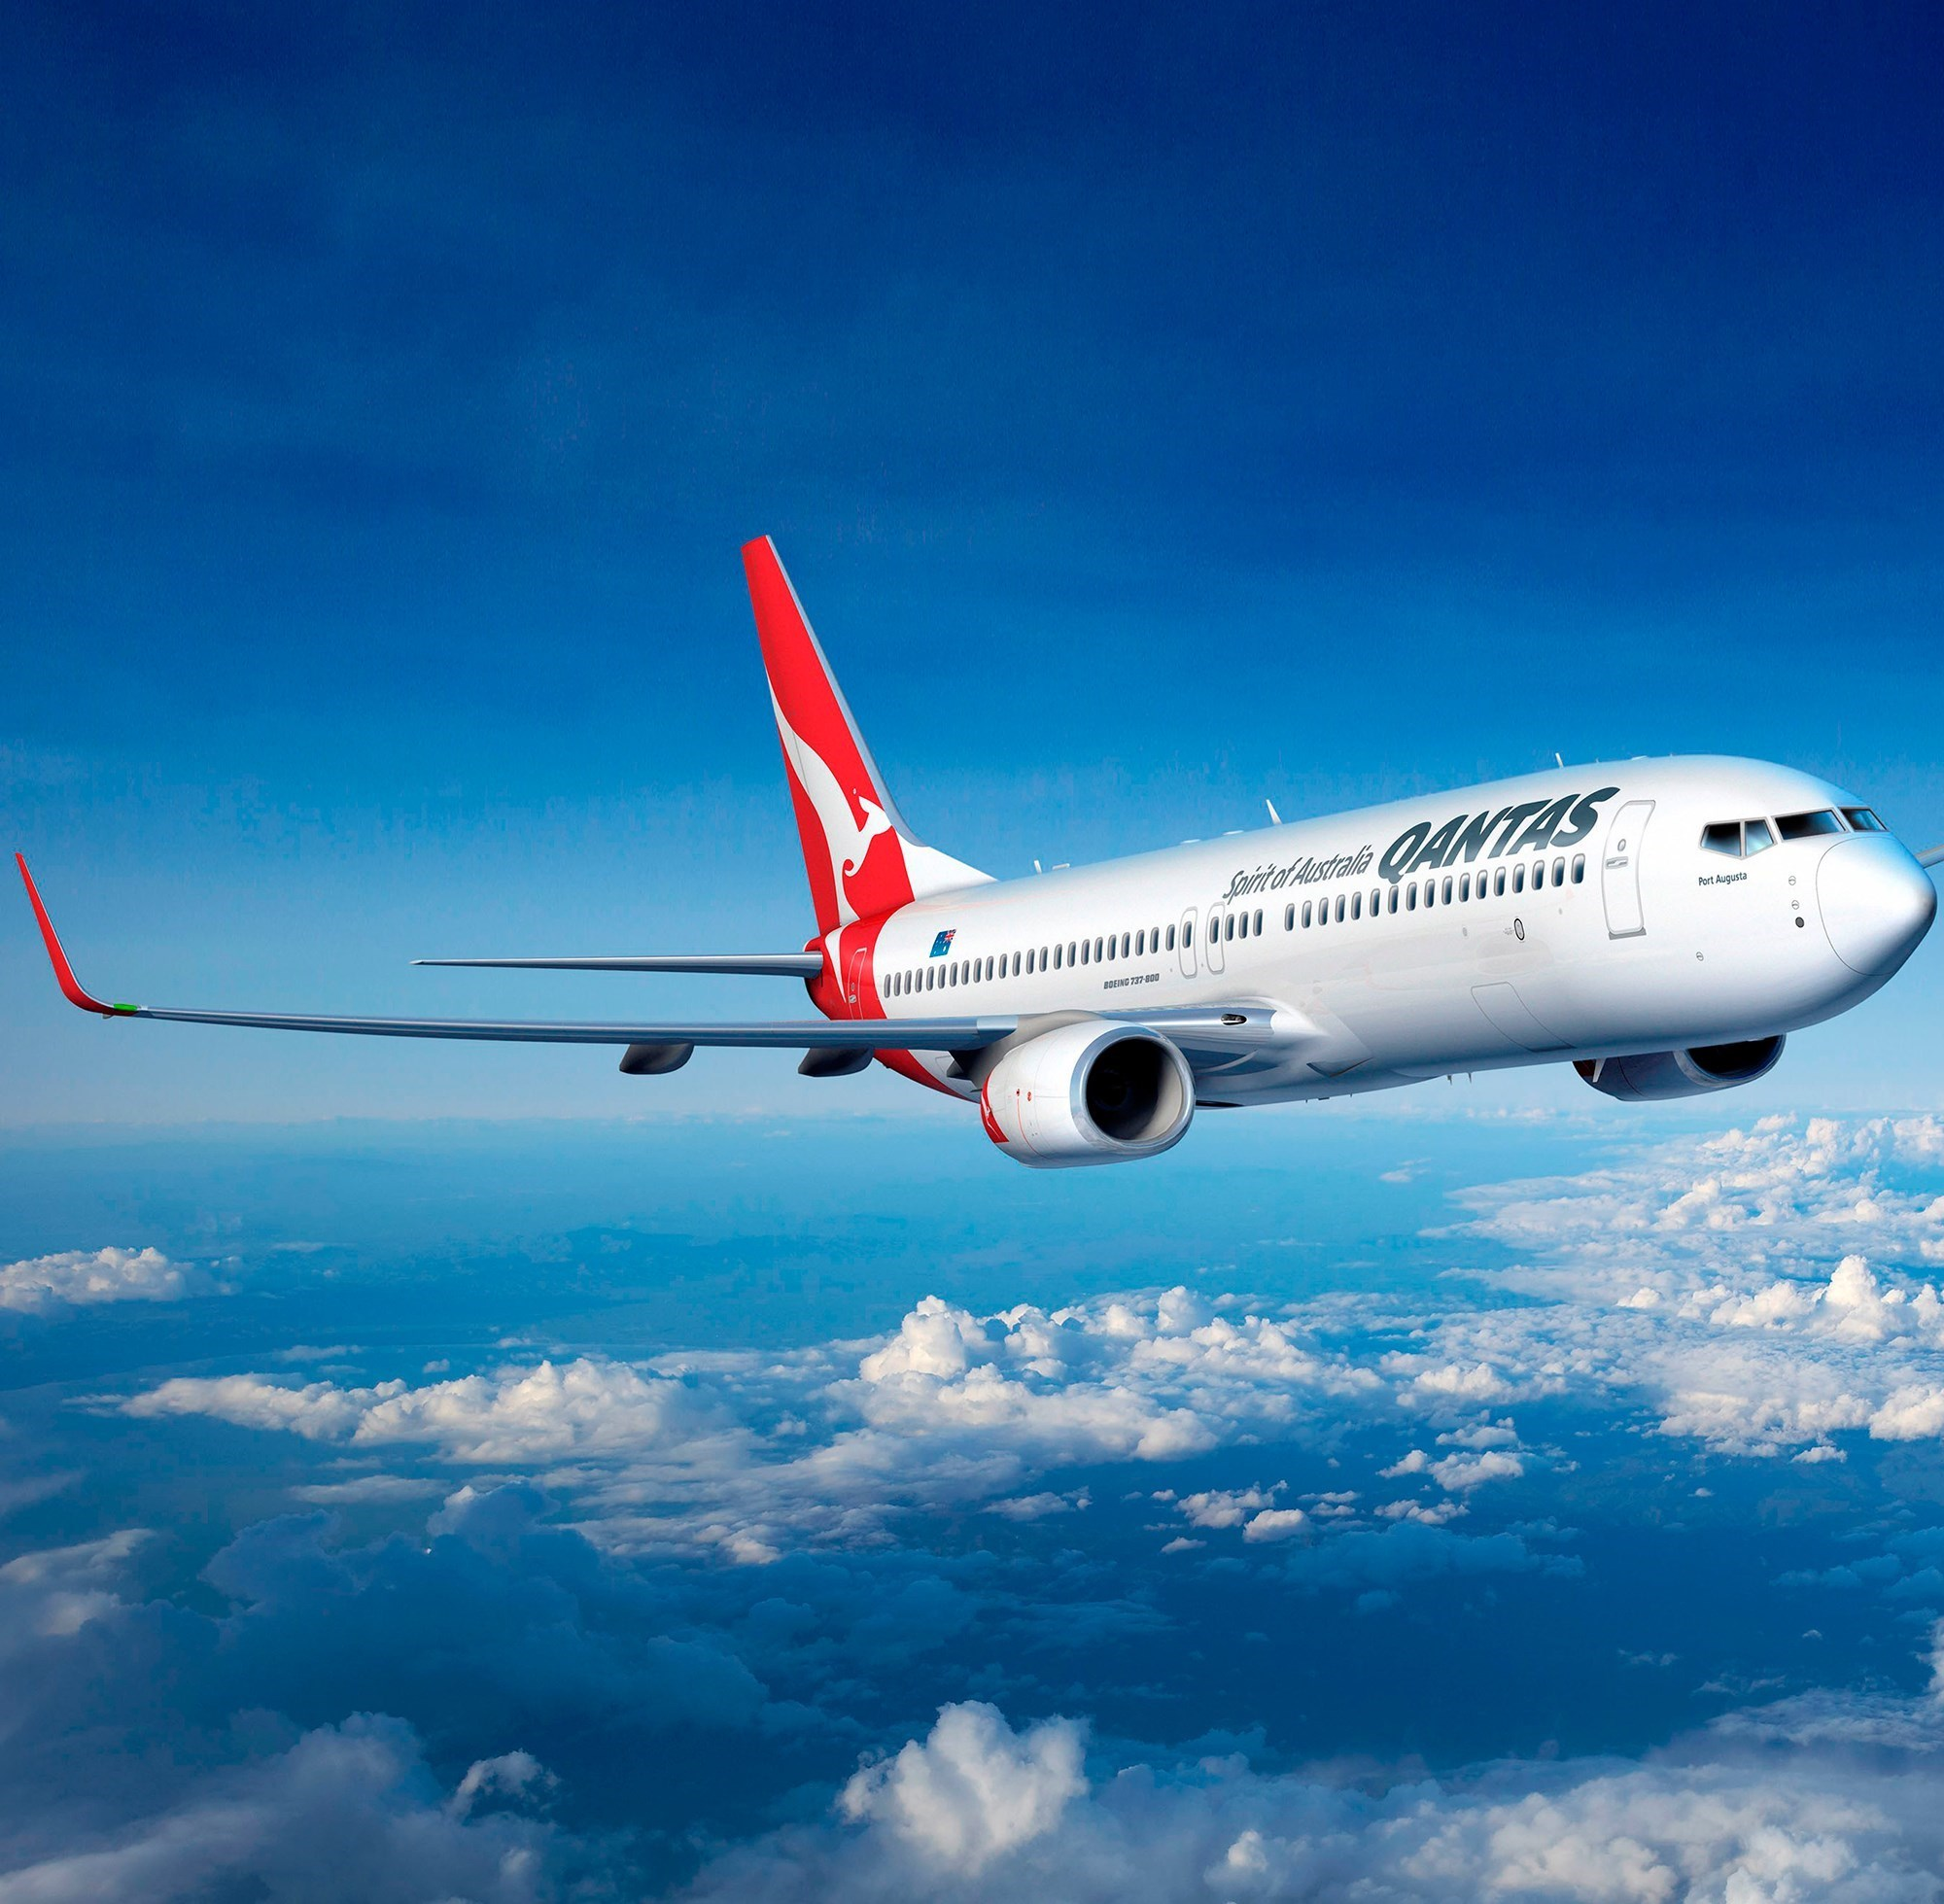 Qantas B737-800. Many people prefer Australia's largest airline company when heading for a family beach vacation on Hamilton Island's luxury resorts